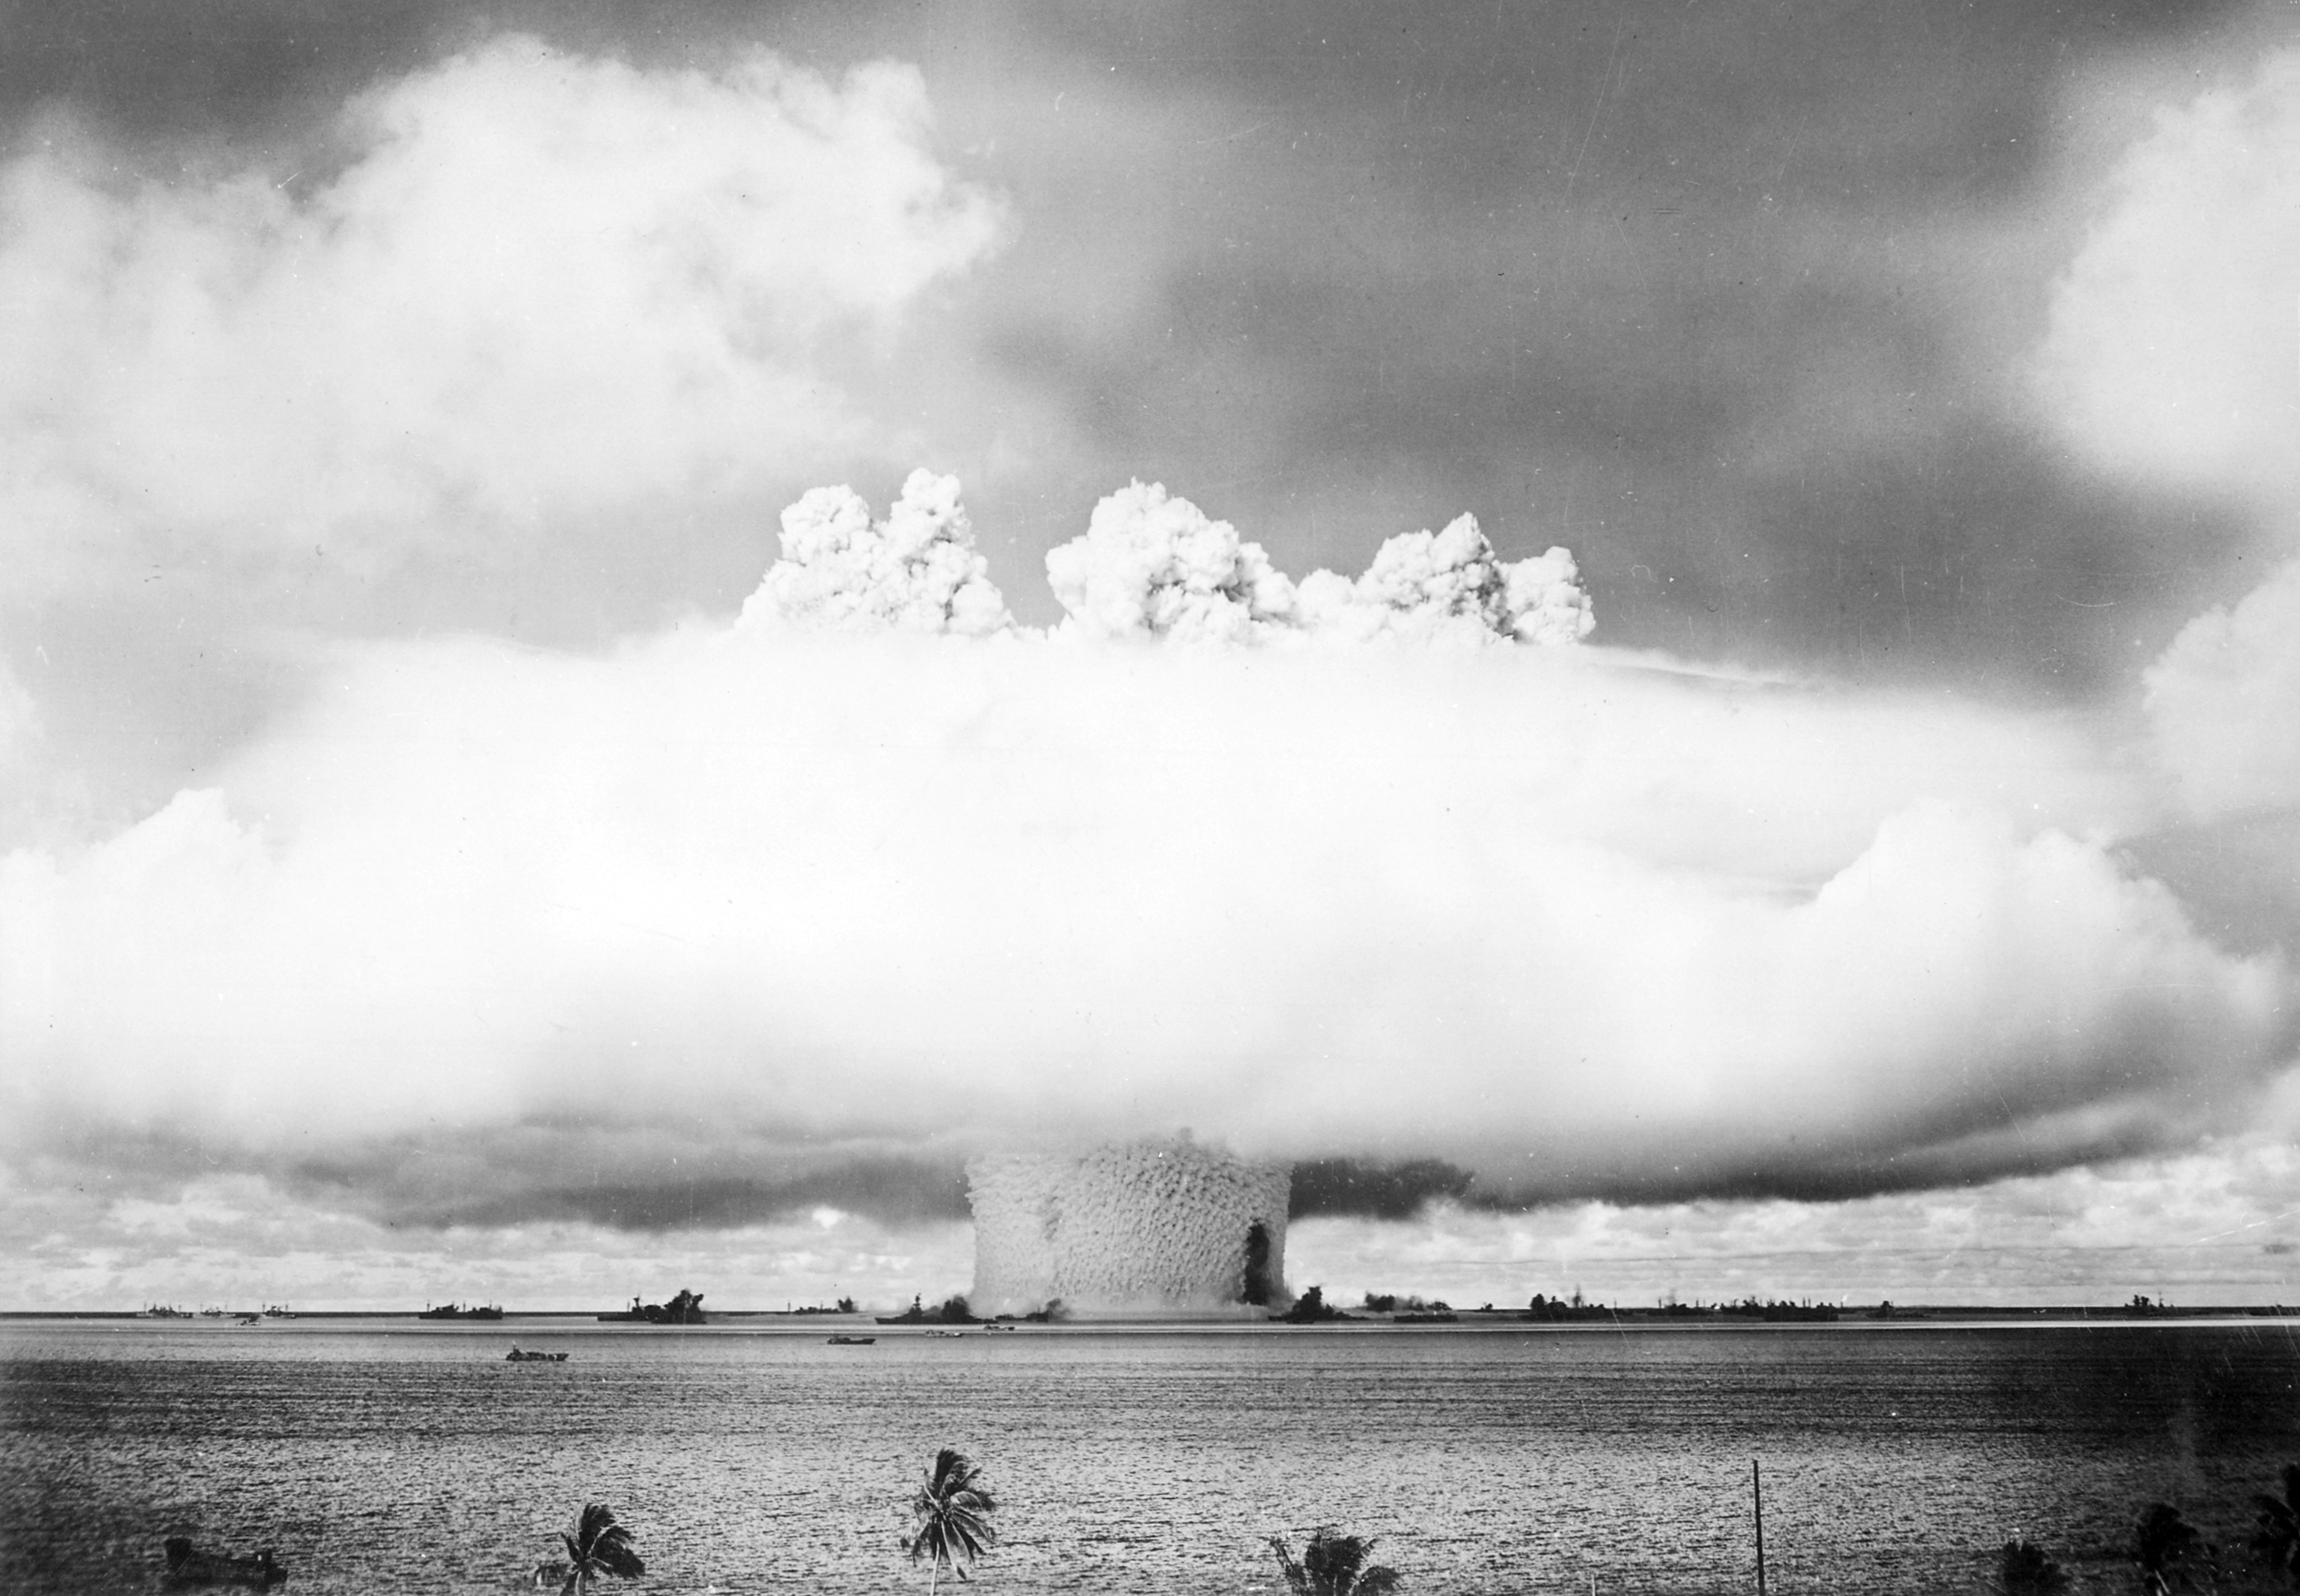 Bikini atoll test photo